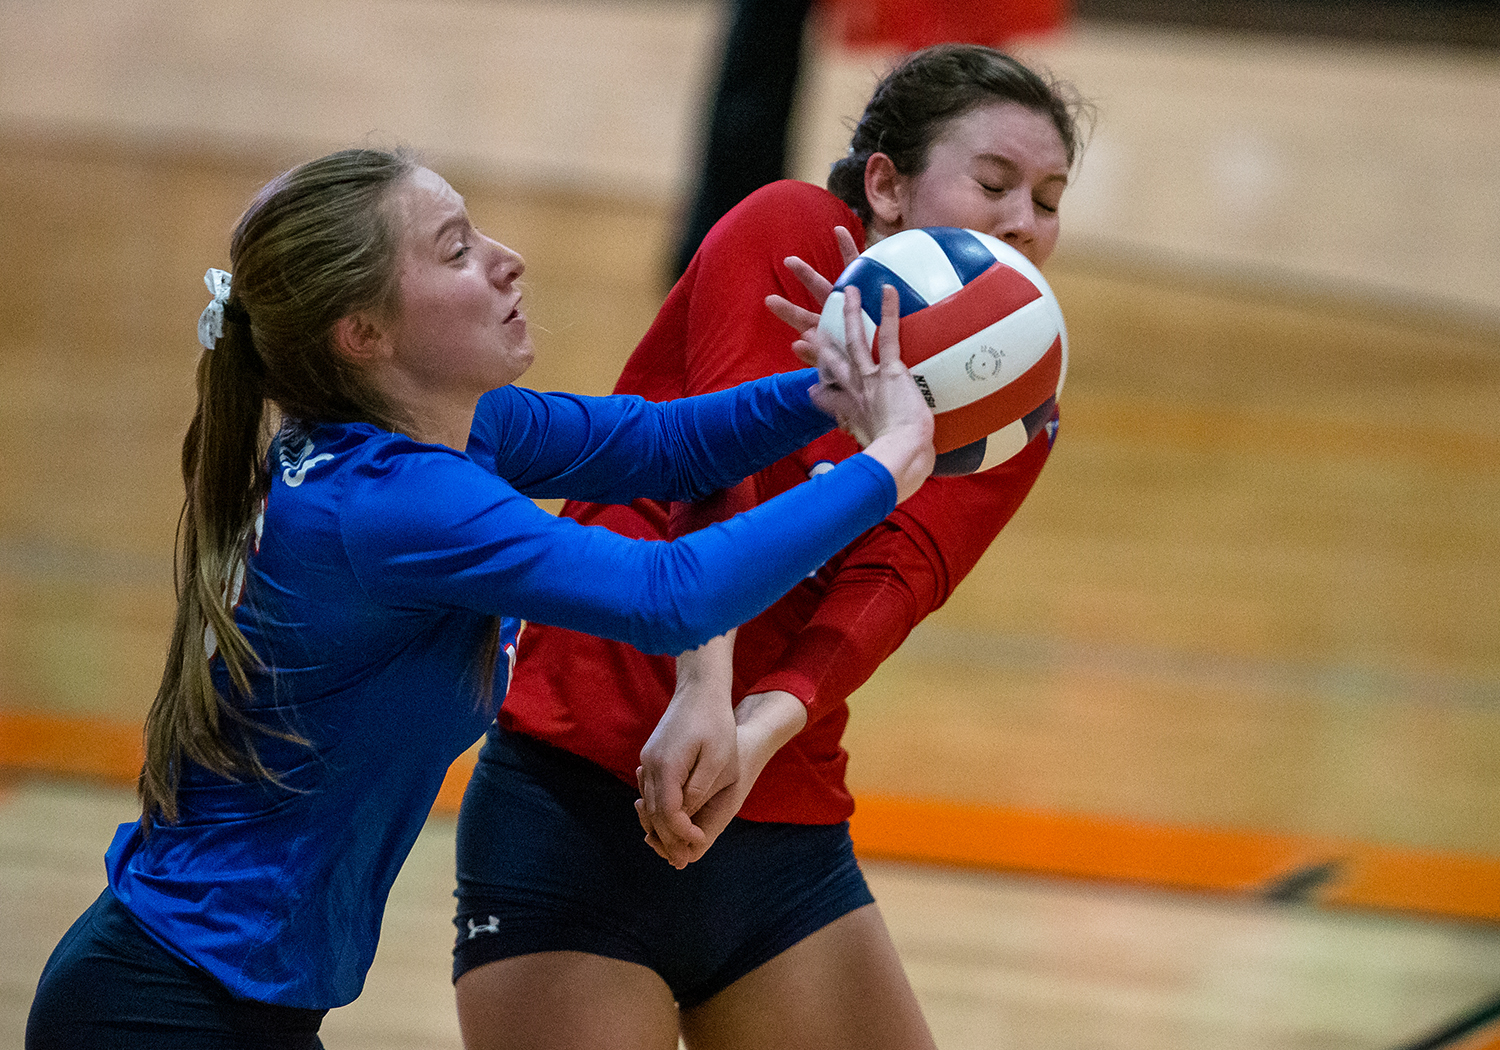 Pleasant Plains' Macy Kanllakan (16) nearly collides with Pleasant Plains' MacKenzie Houser (3) as she returns a serve against Eureka in the Class 2A Beardstown Supersectional at Beardstown High School, Friday, Nov. 2, 2018, in Beardstown, Ill. [Justin L. Fowler/The State Journal-Register]